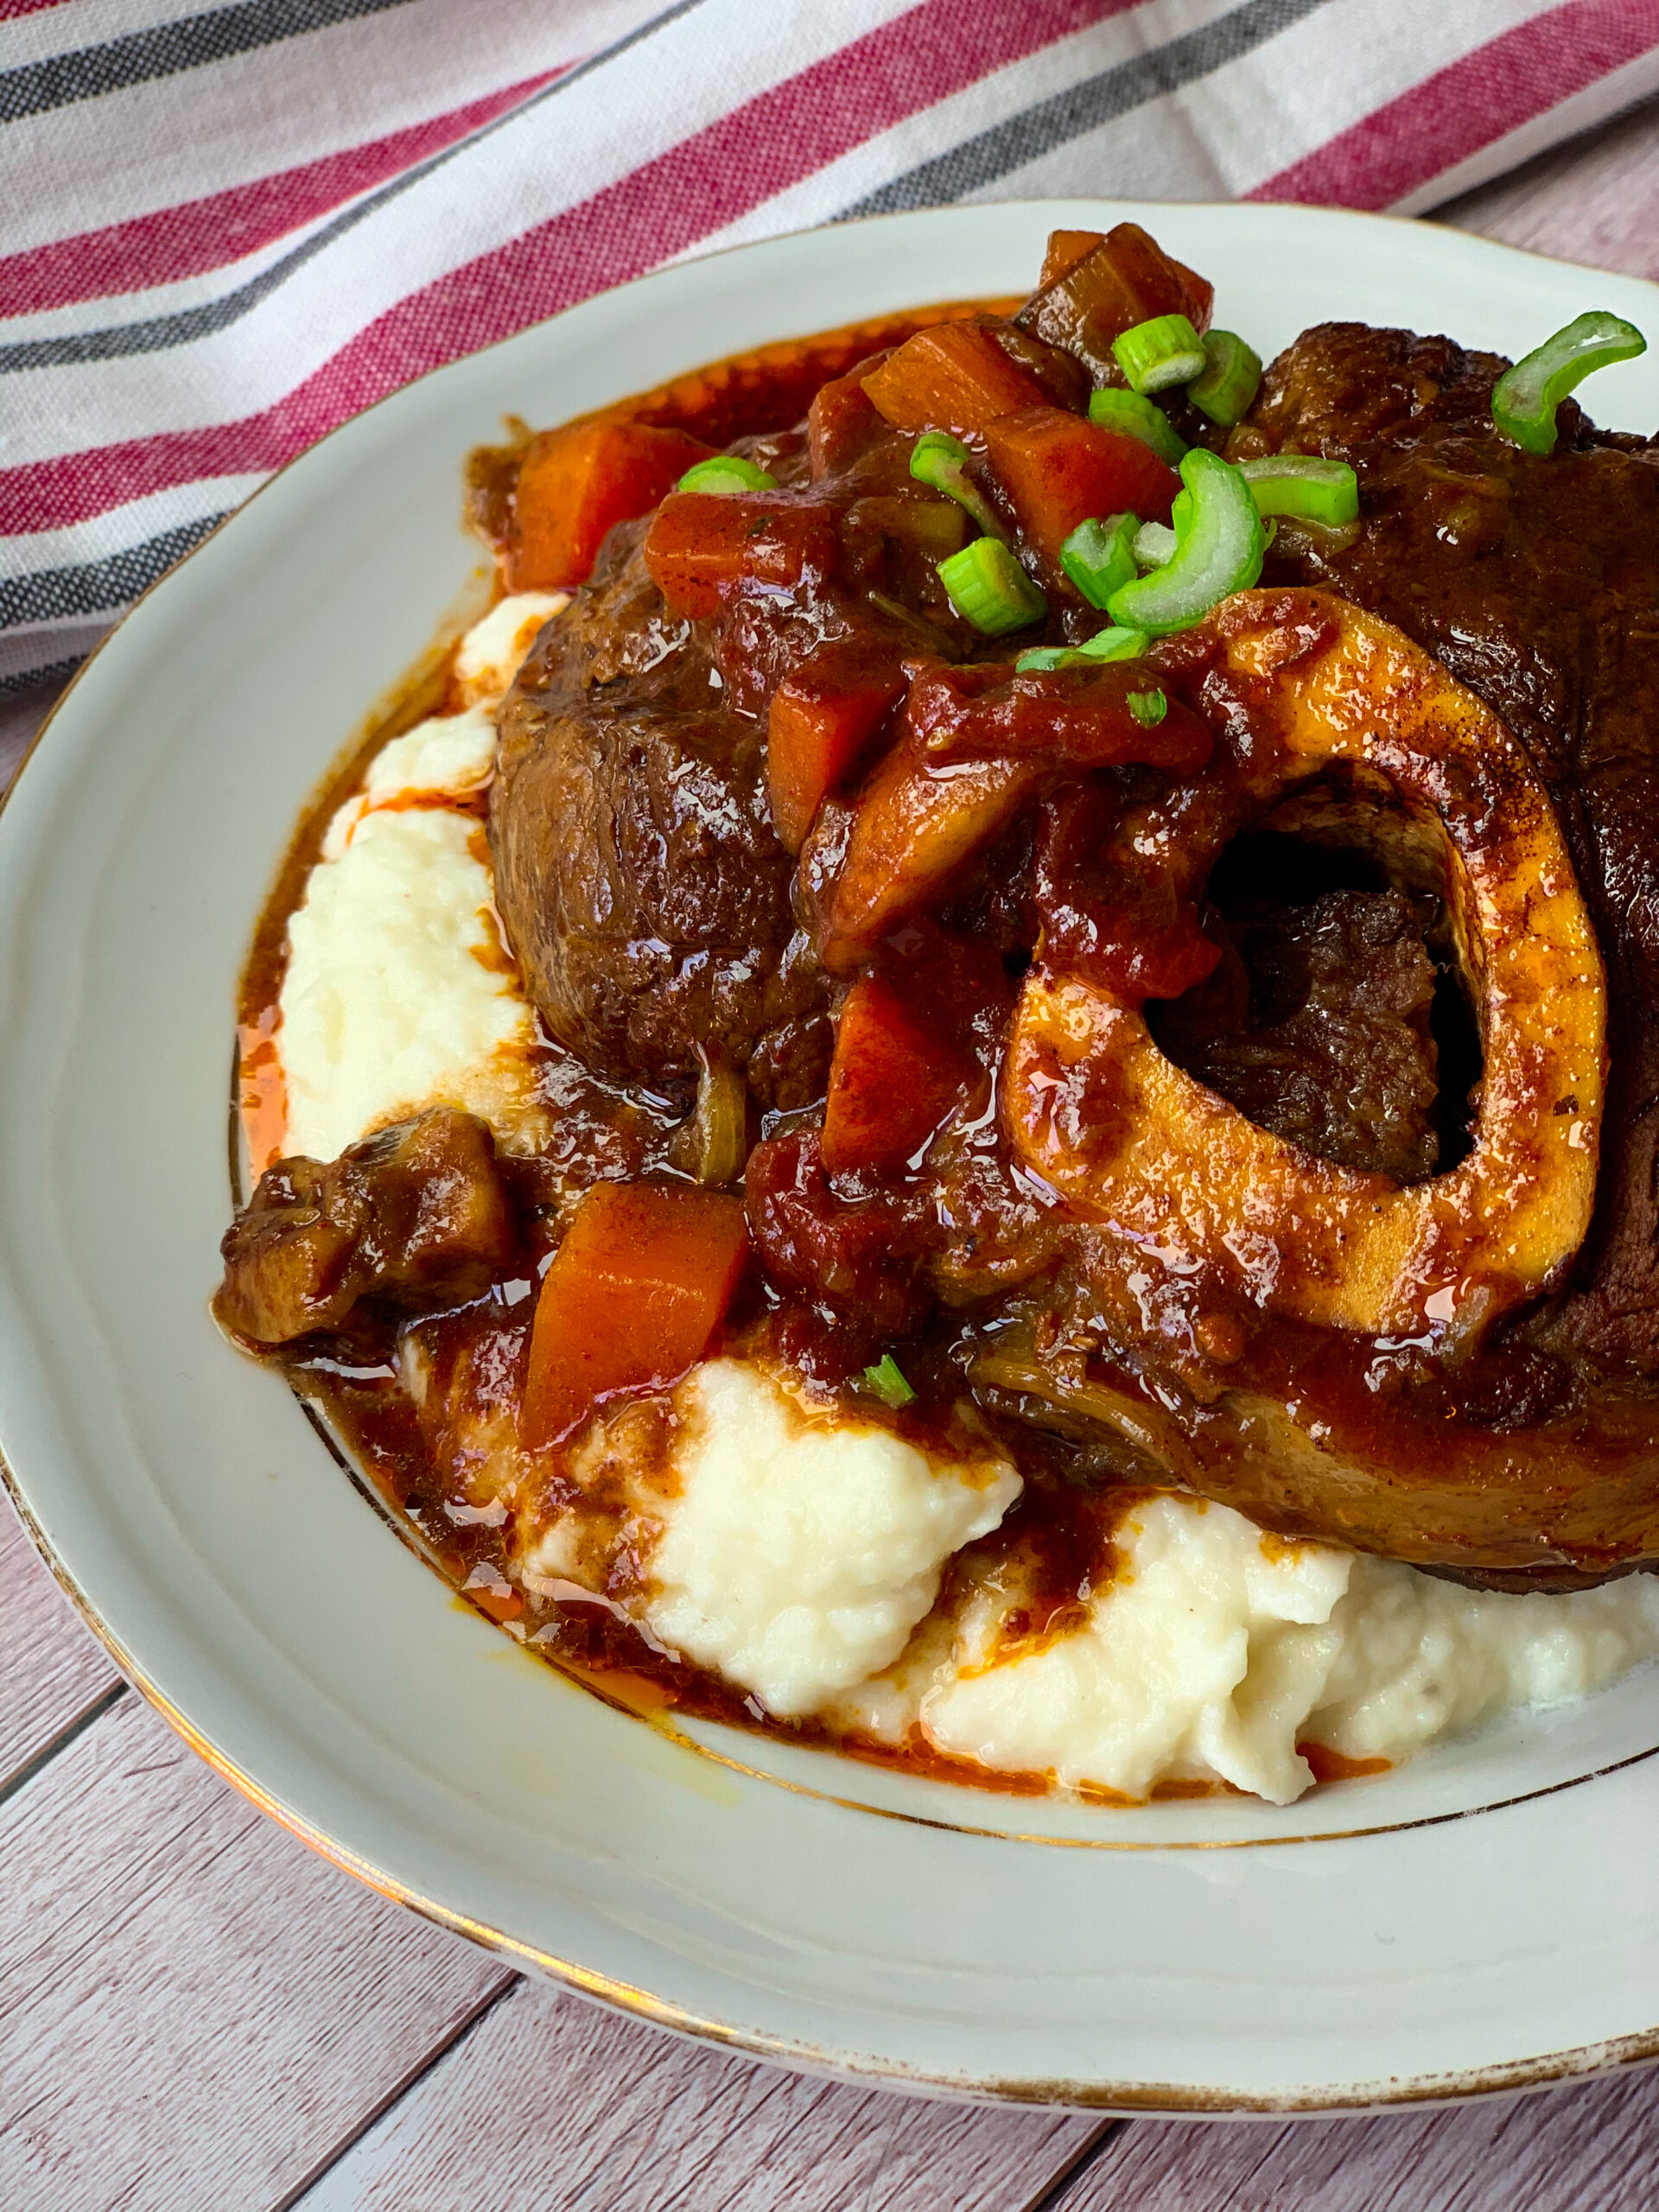 Picture of delicious low carb beef osso buco